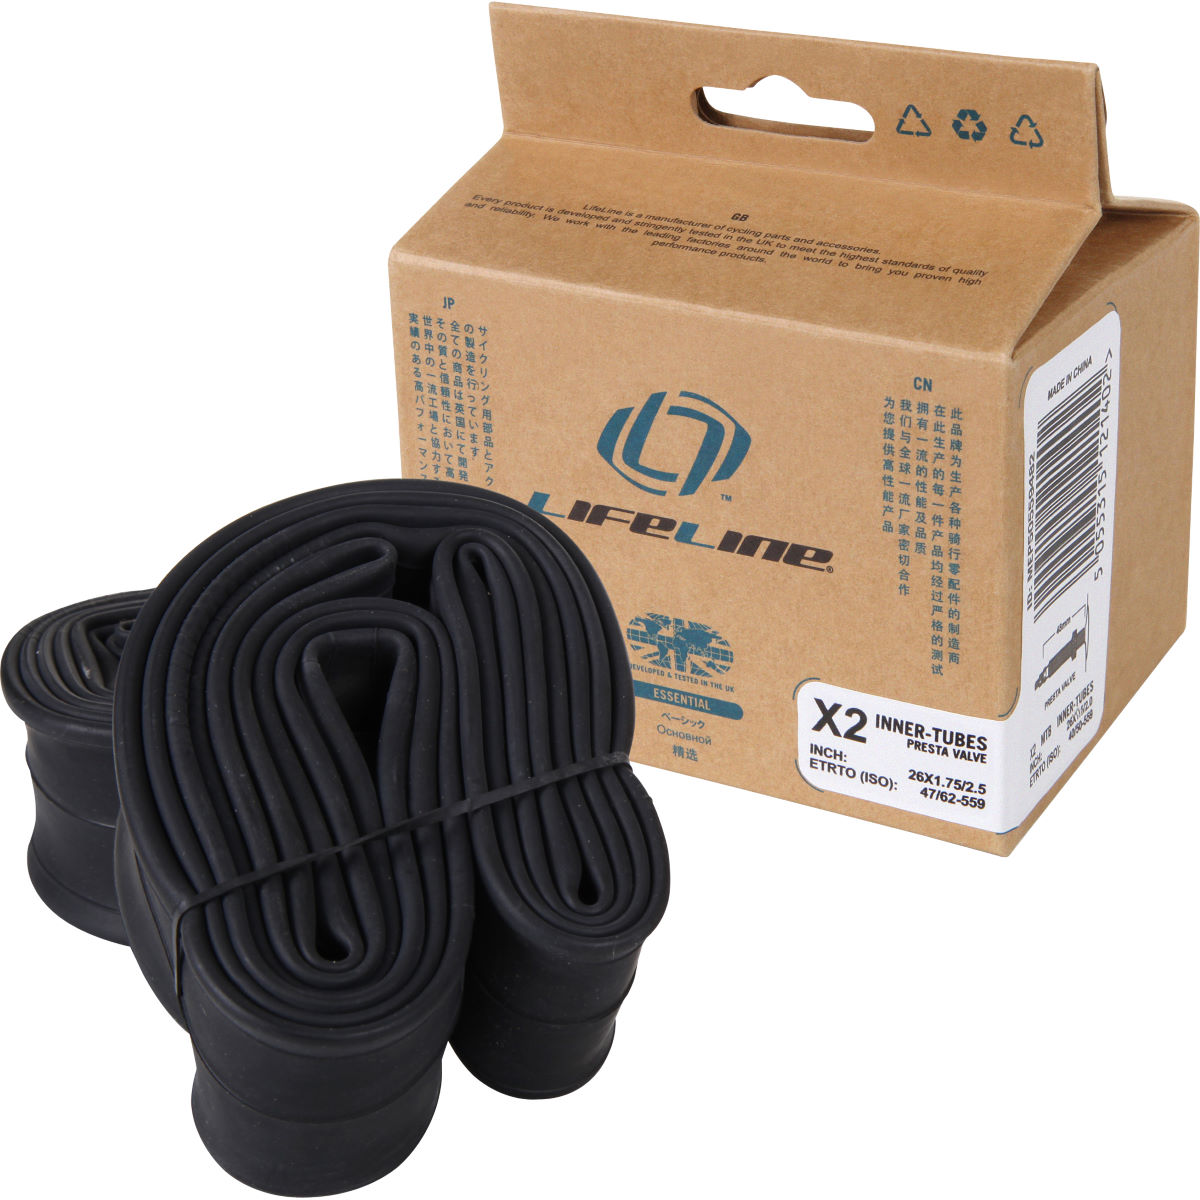 LifeLine Essential MTB Wide Inner Tubes - 2 Pack